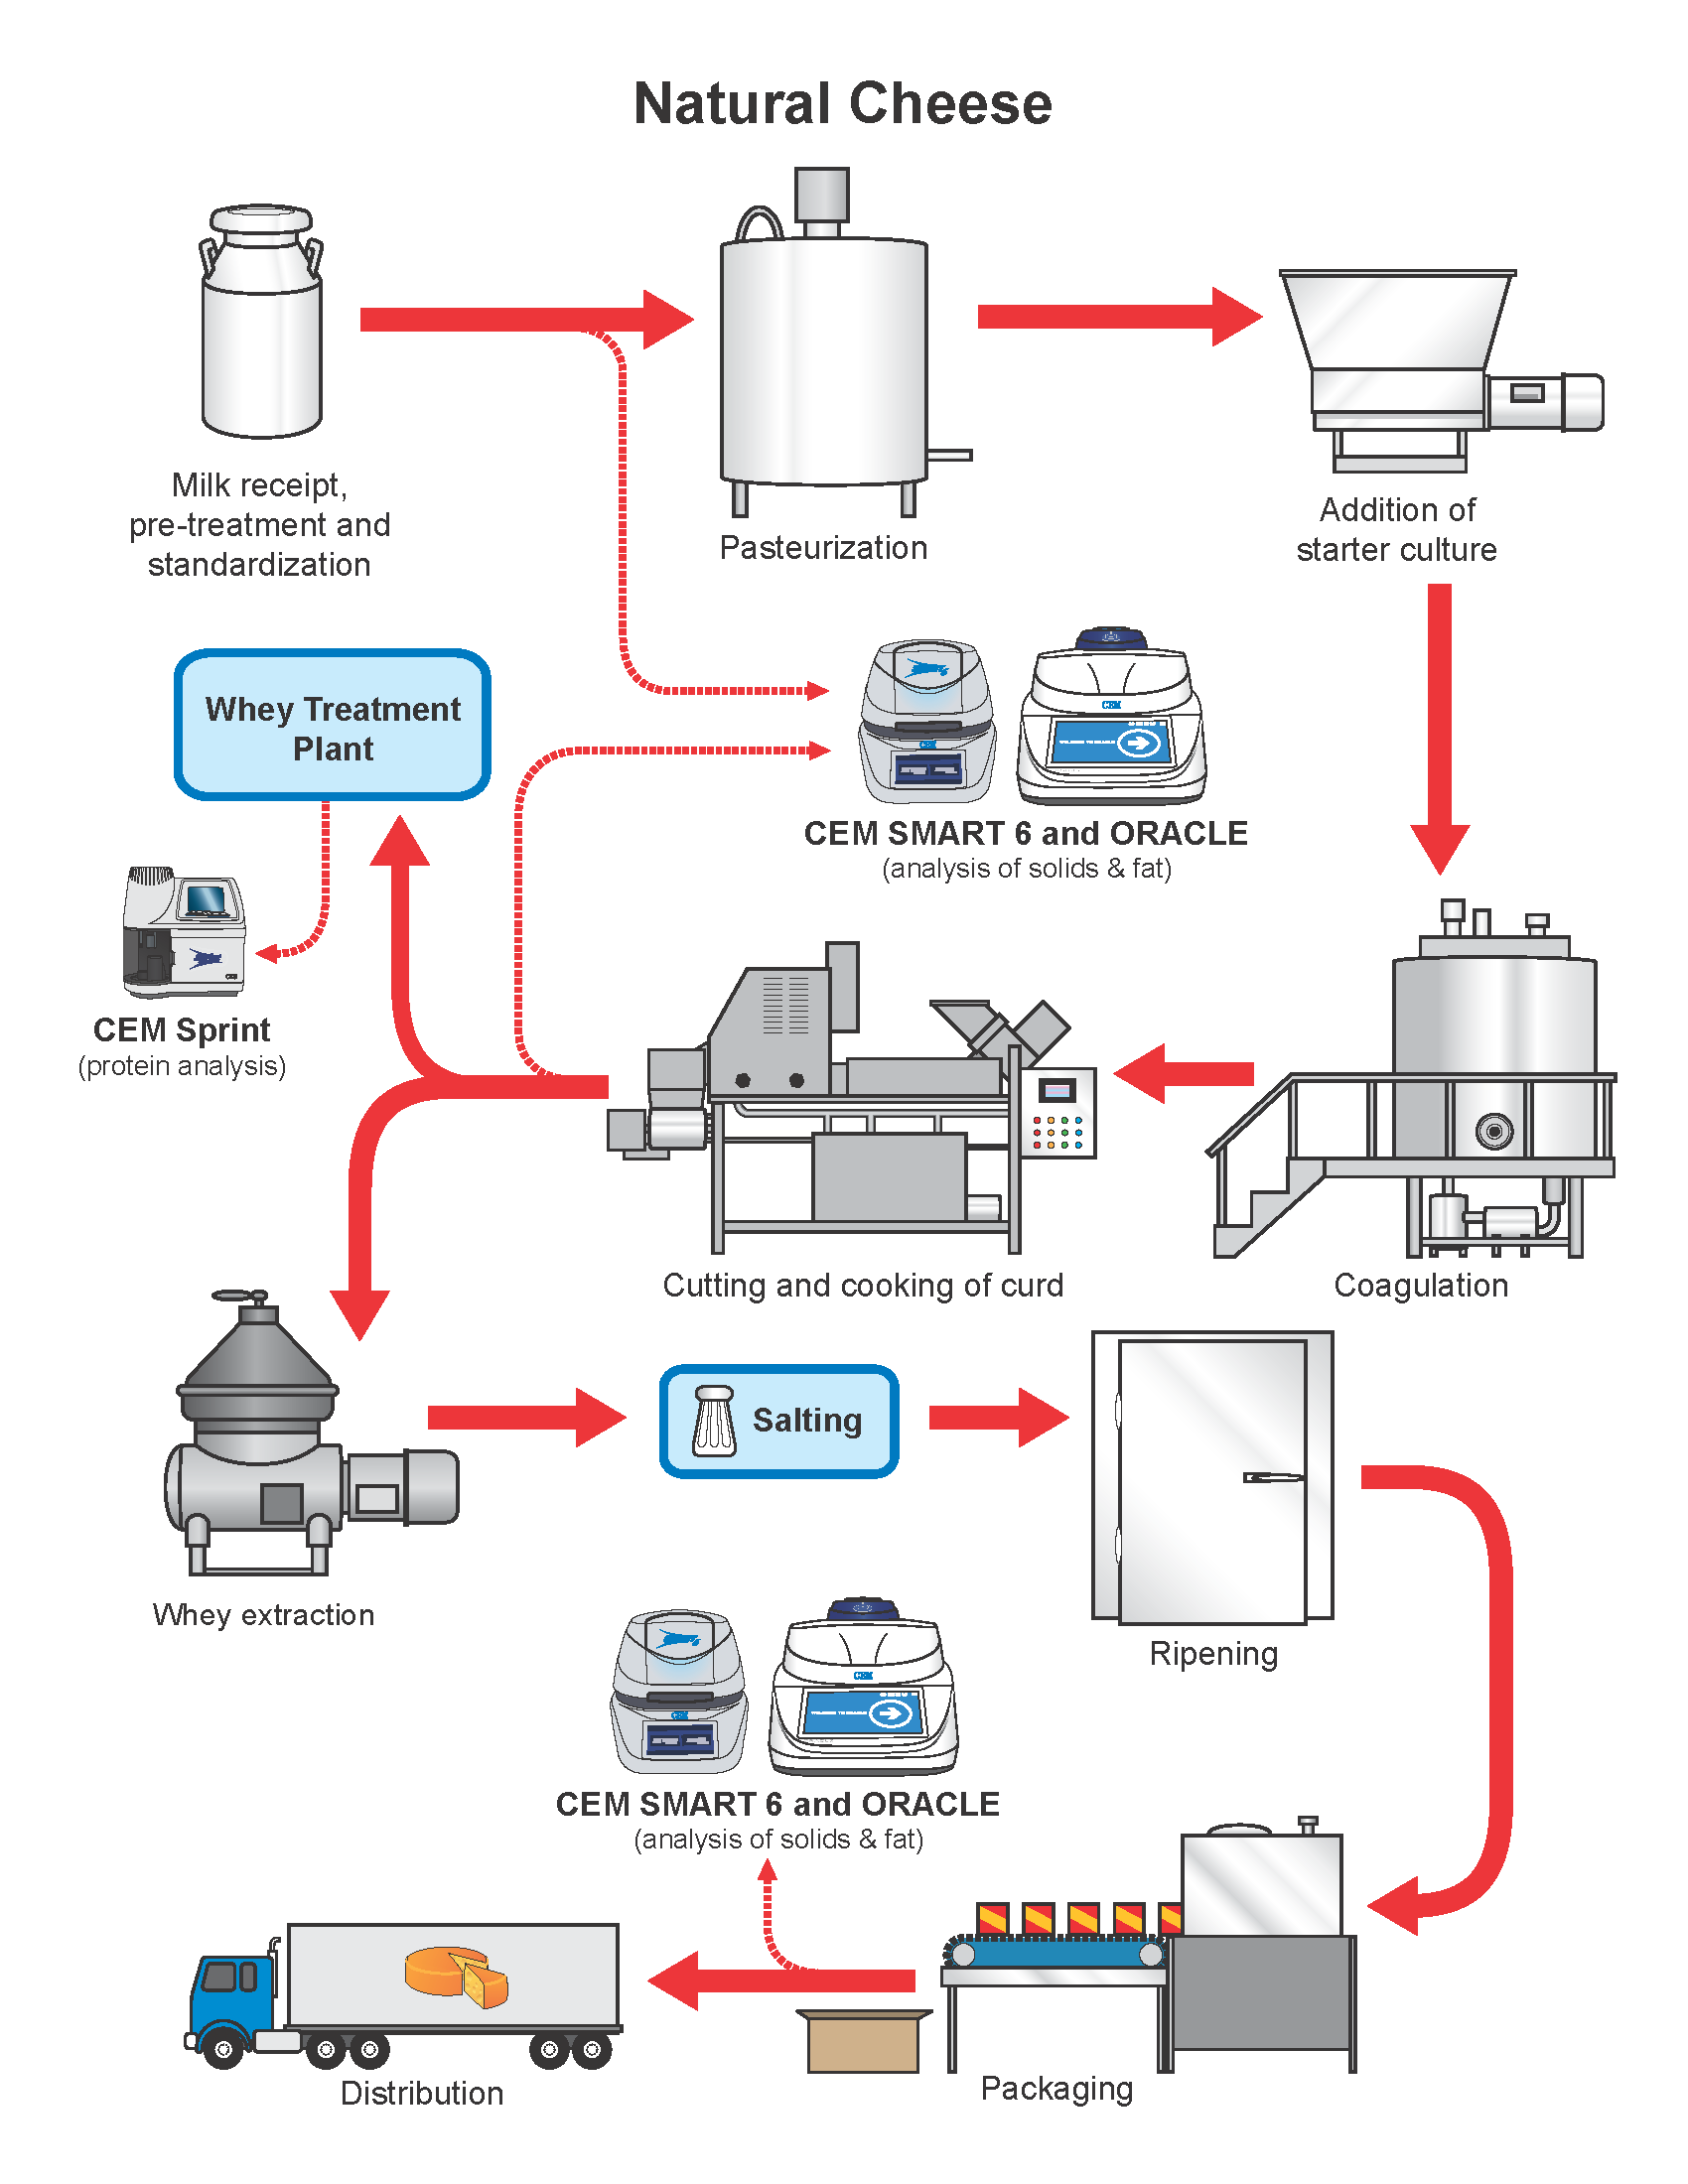 Natural Cheese Production Process